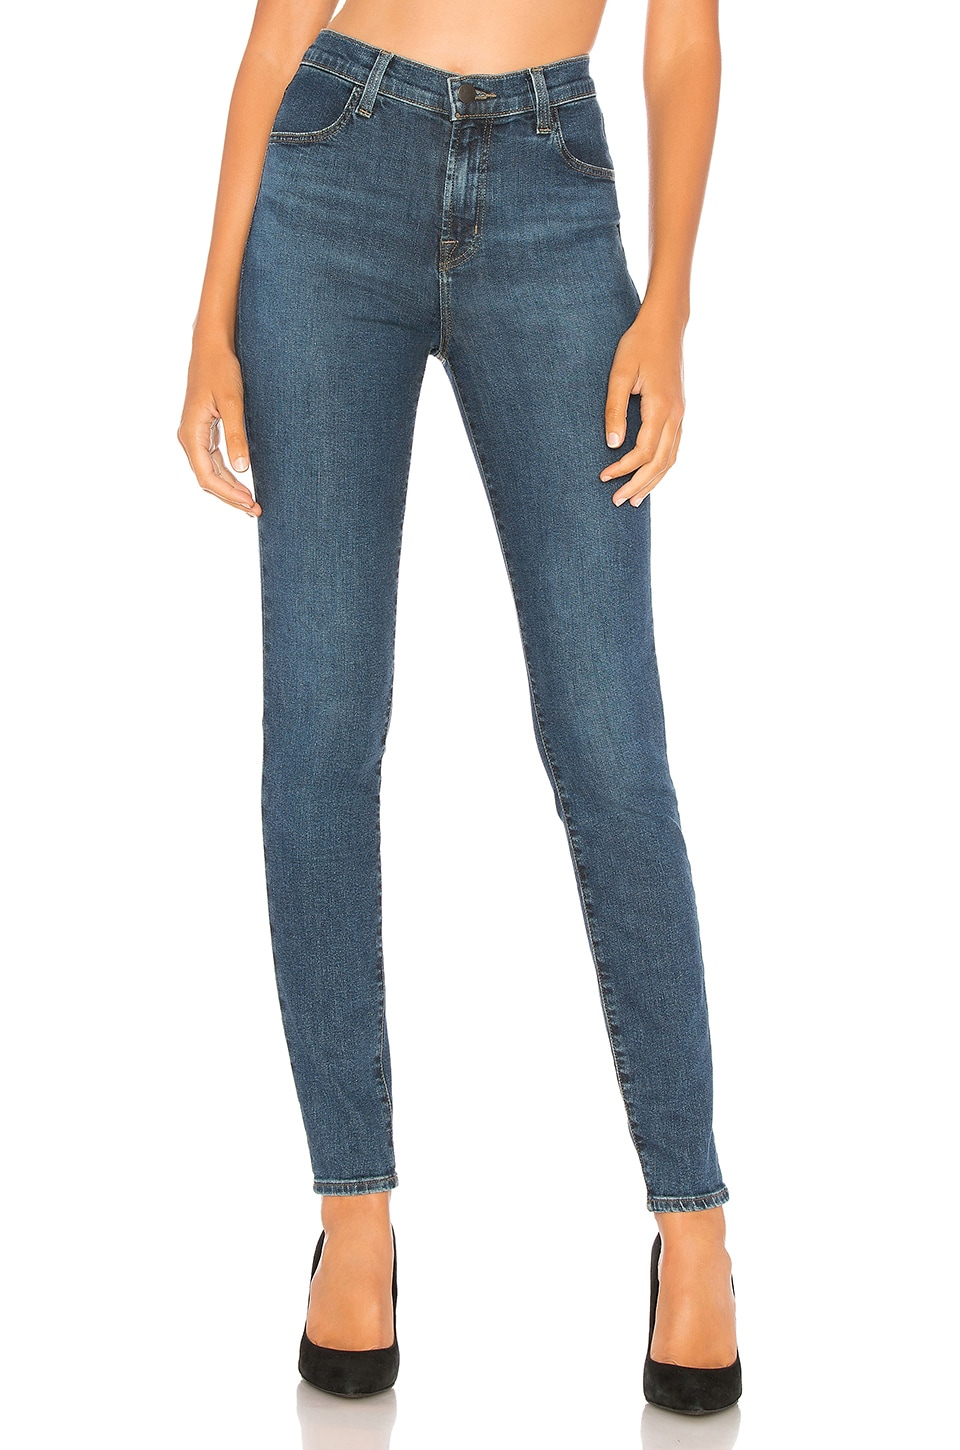 Maria High Waist Skinny Jeans, Moral